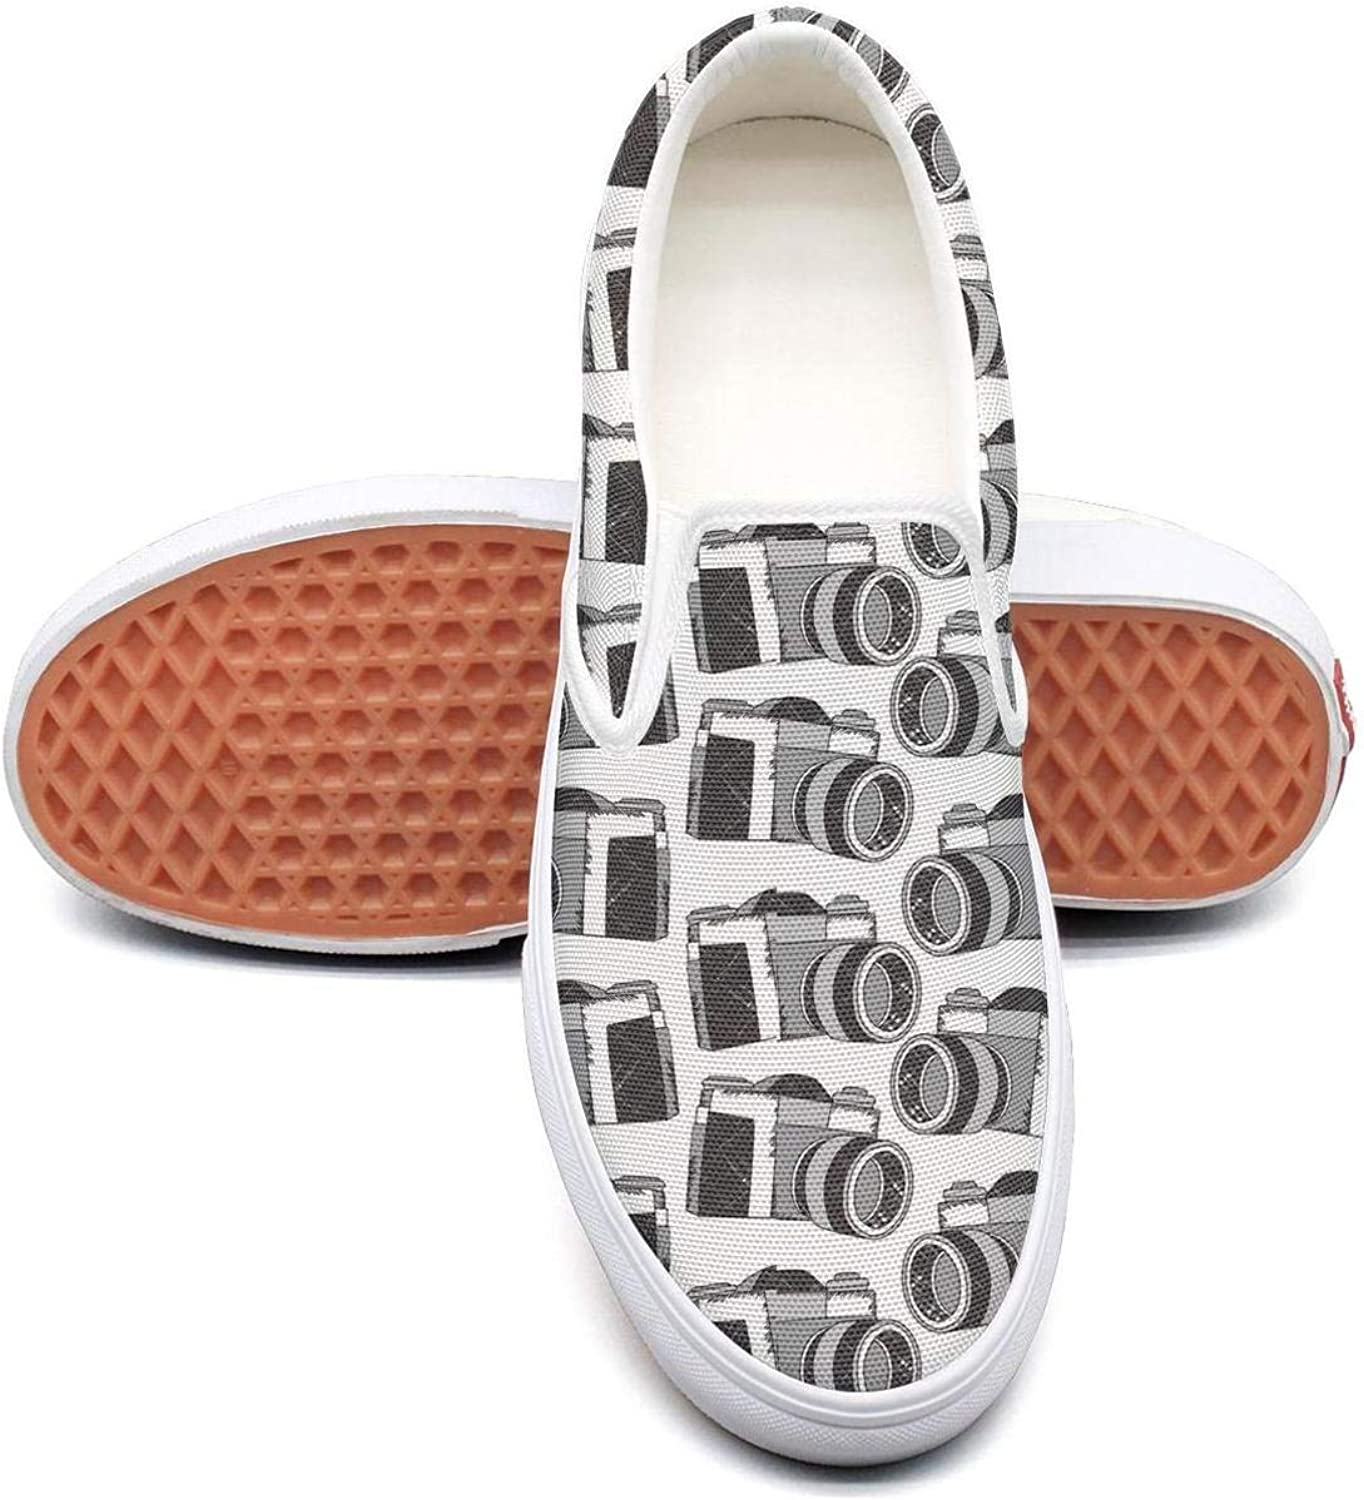 Refyds-es Black Camera Pattern Womens Fashion Slip on Low Top Lightweight Canvas Basketball shoes